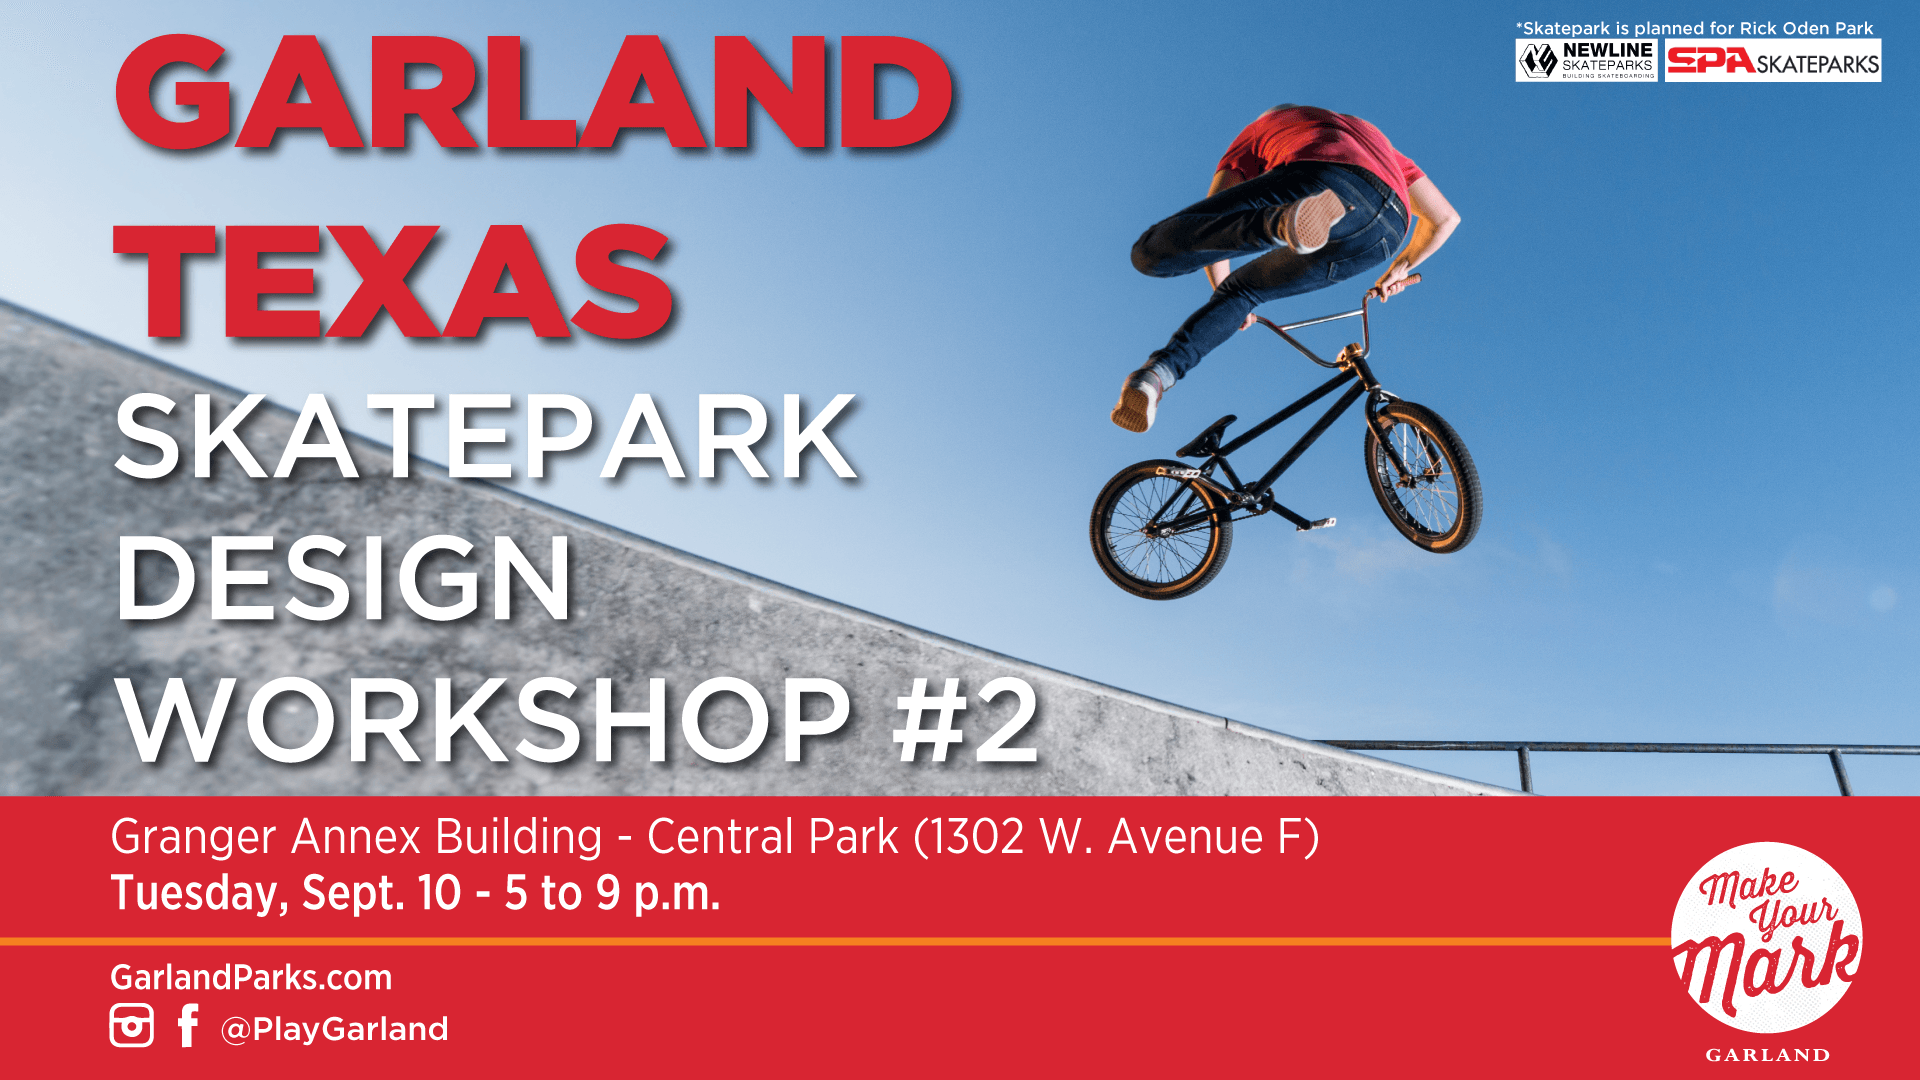 Garland Skatepark Design Workshop with guy on bike at skatepark